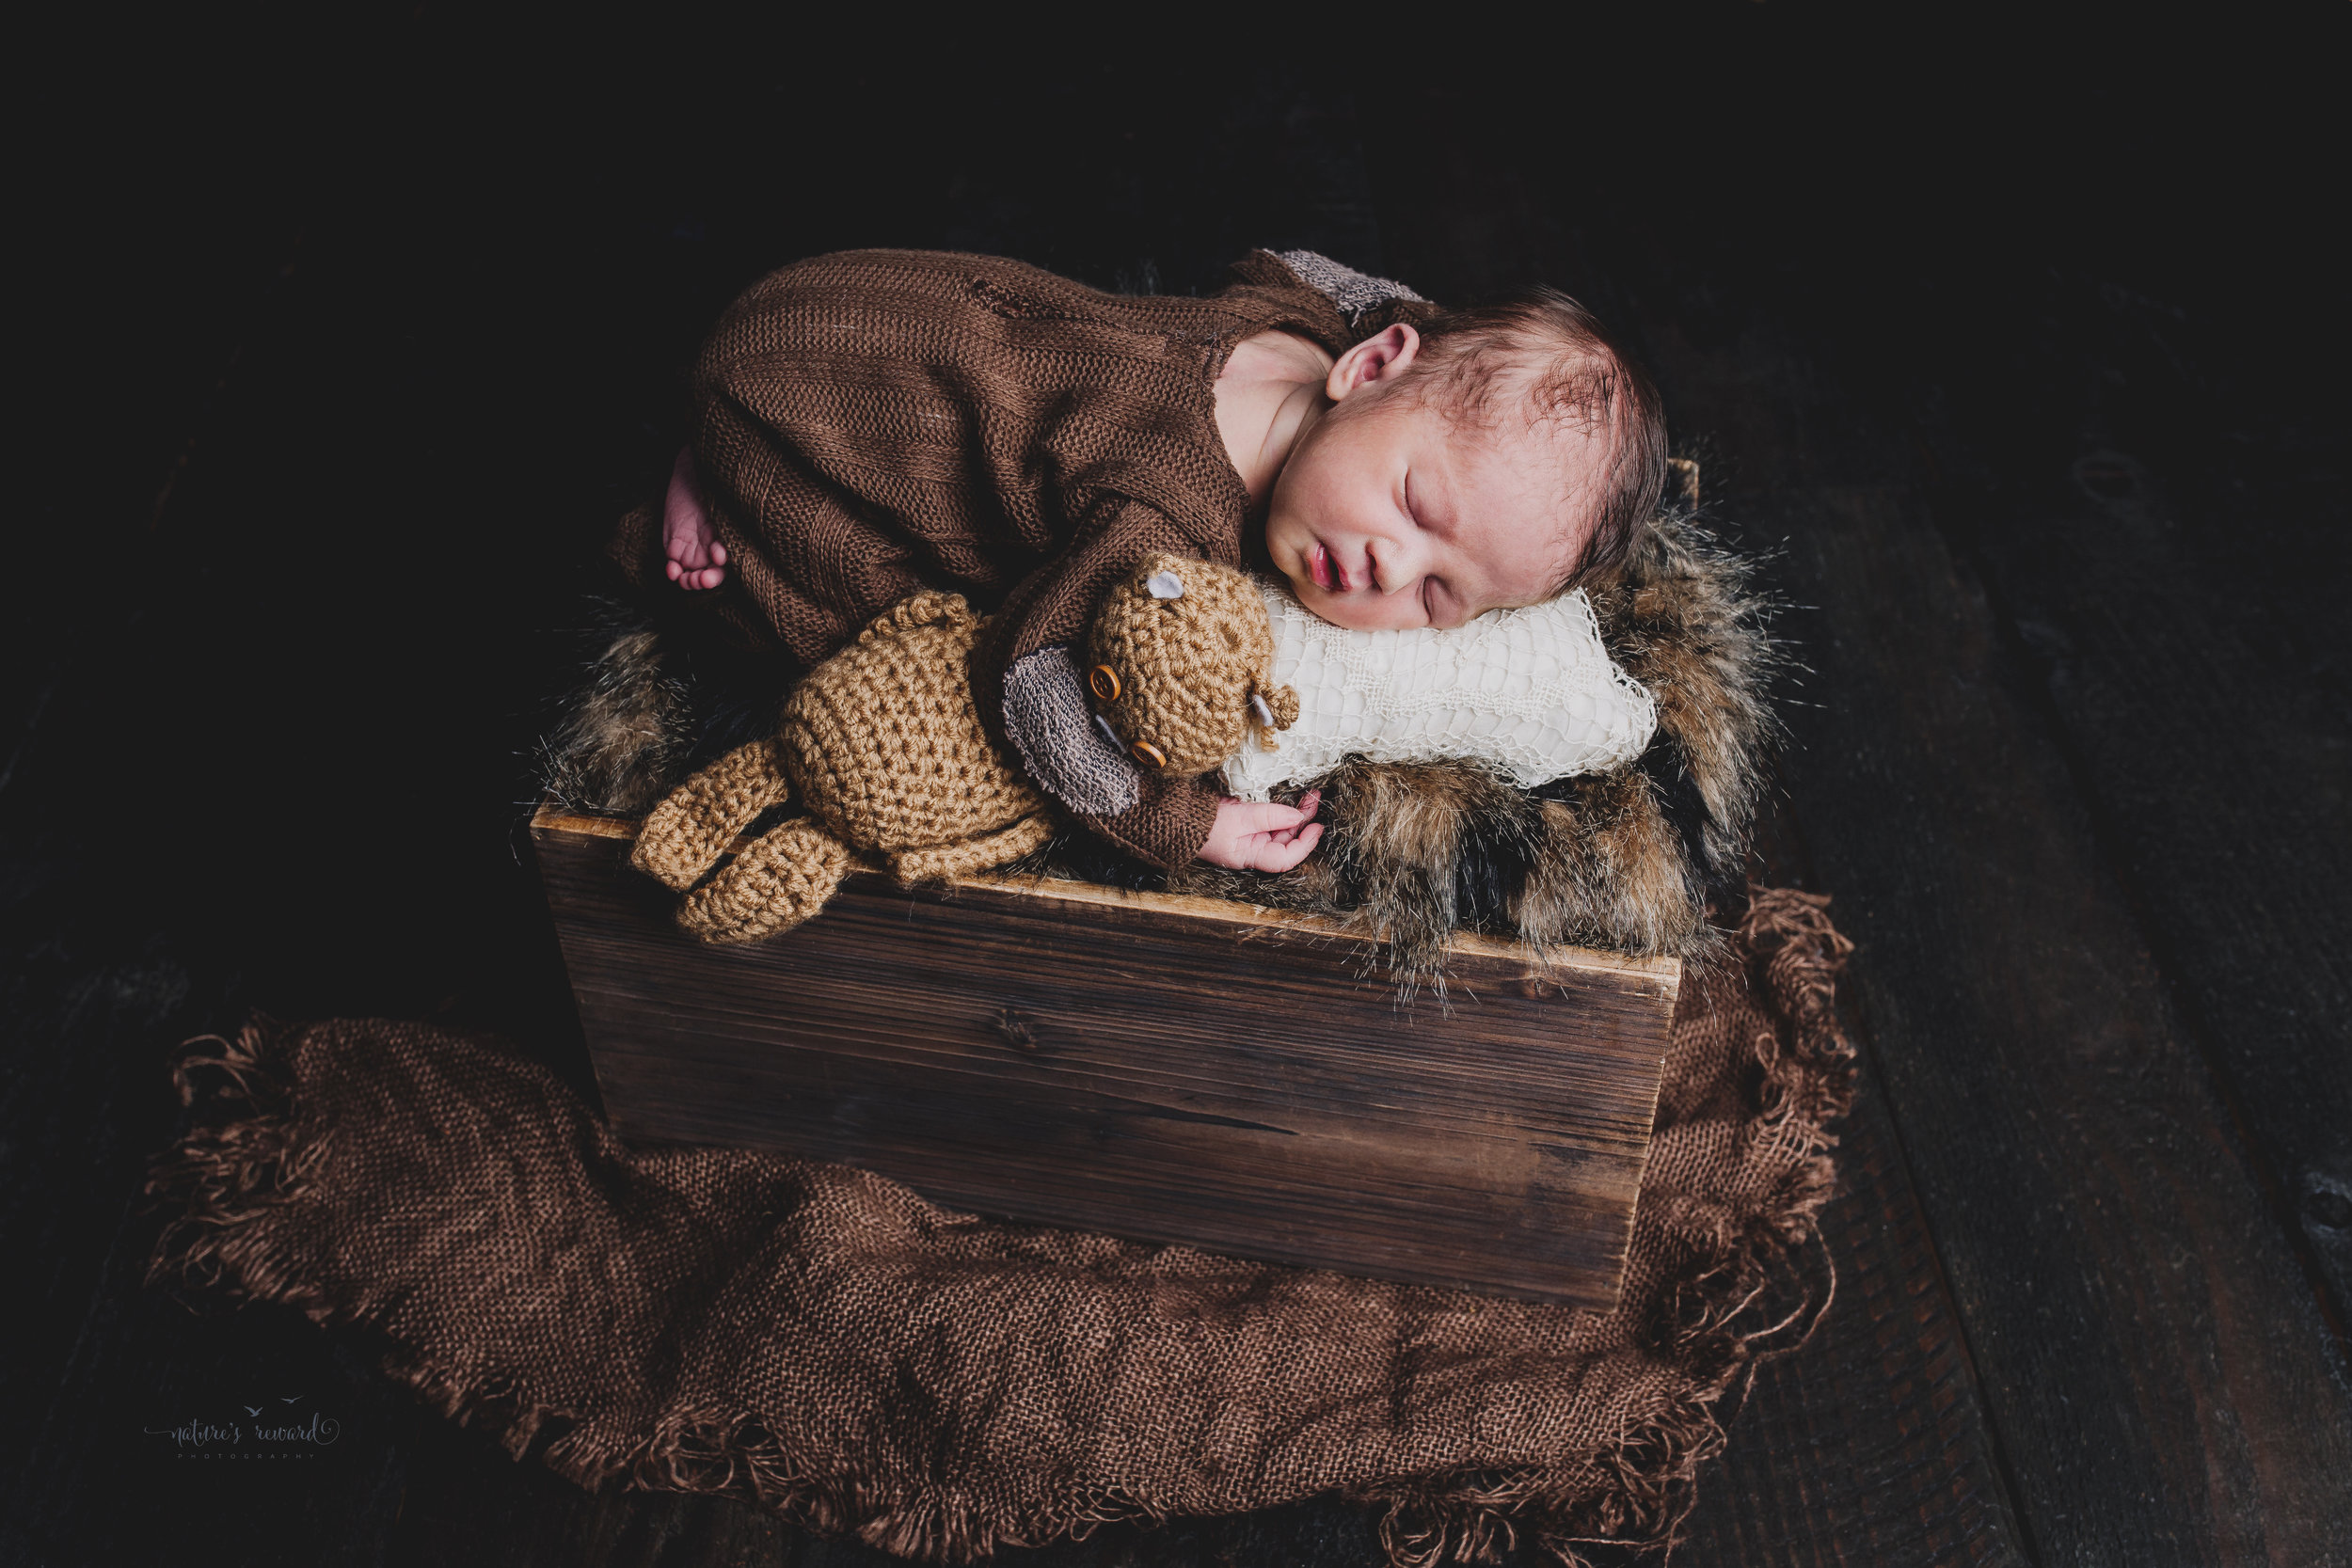 Newborn baby boy portrait wearing a brown outfit and matching cap holding a teddy in a box of fur by Nature's Reward Photography